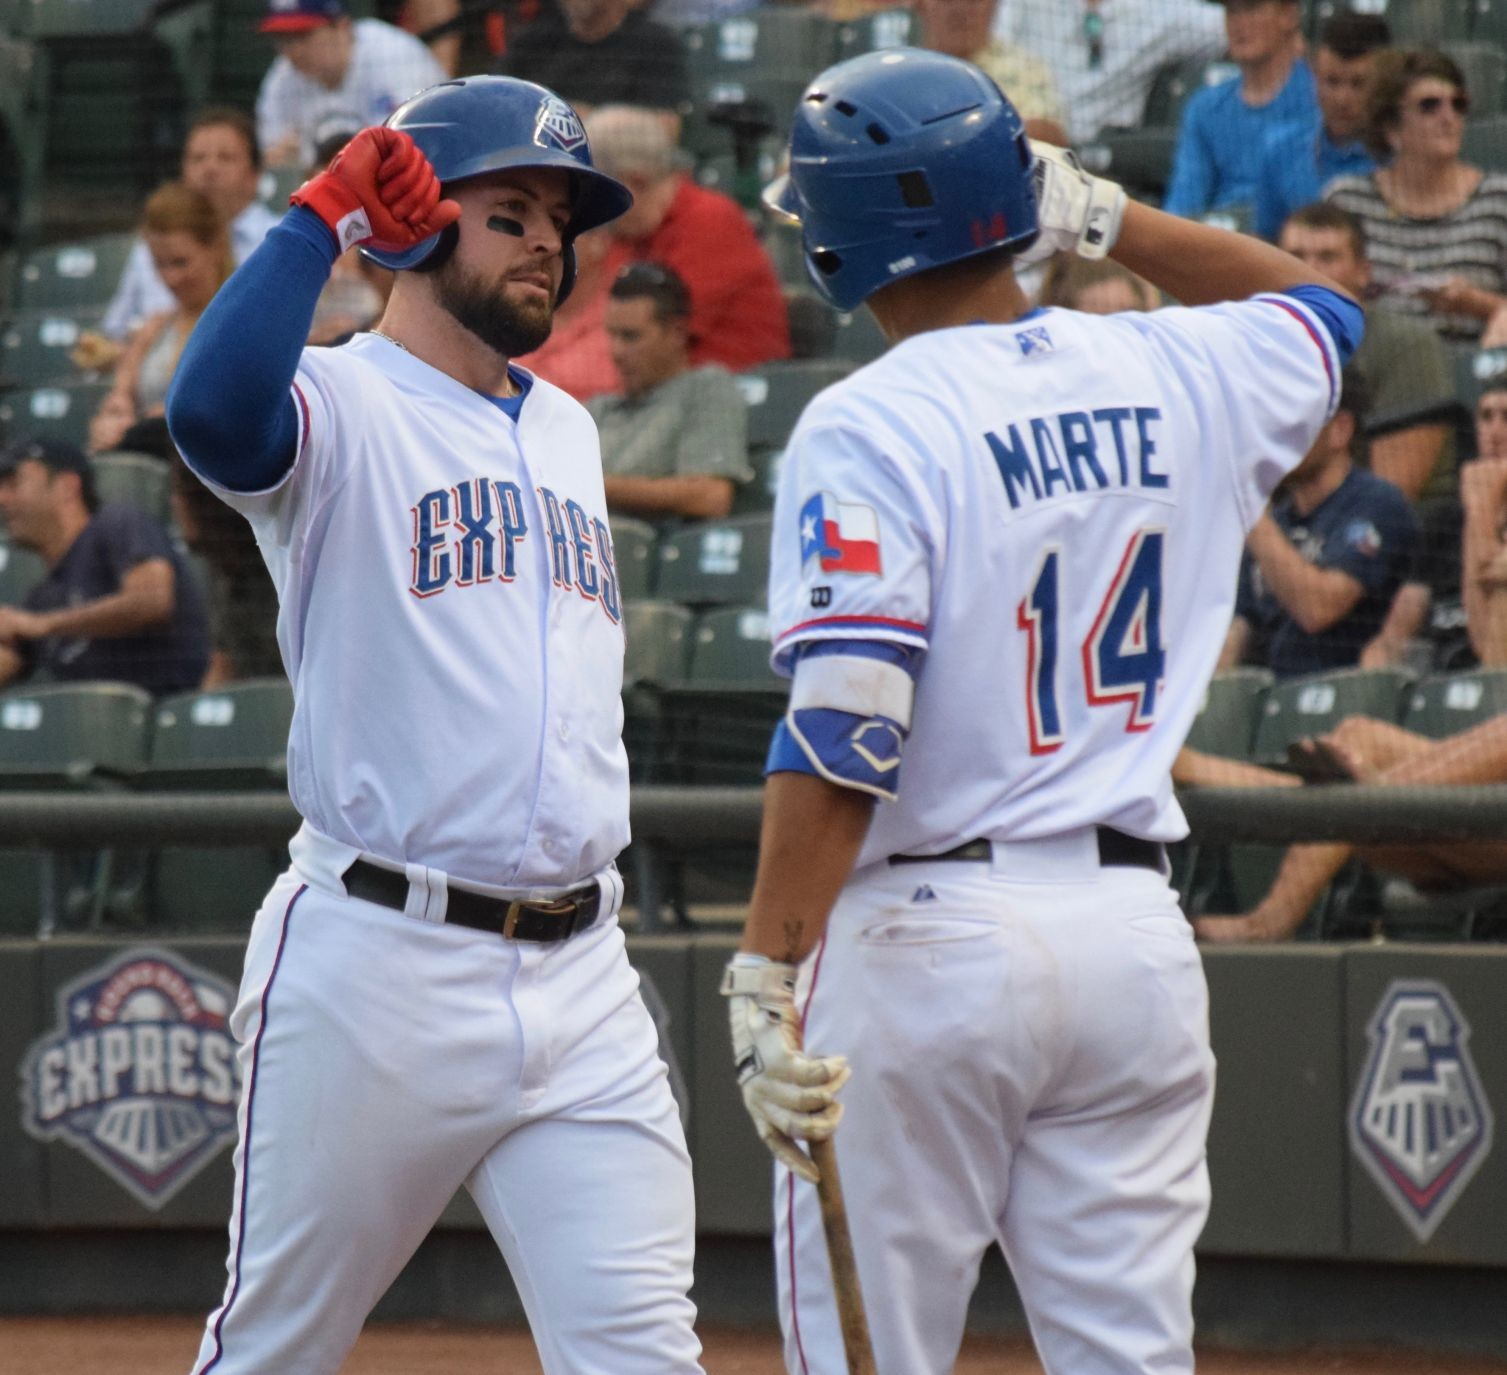 Jason Martinson, left, hit a three-run home run, one of three long balls by Round Rock in its 10-1 win over the New Orleans Baby Cakes Monday night at Dell Diamond.